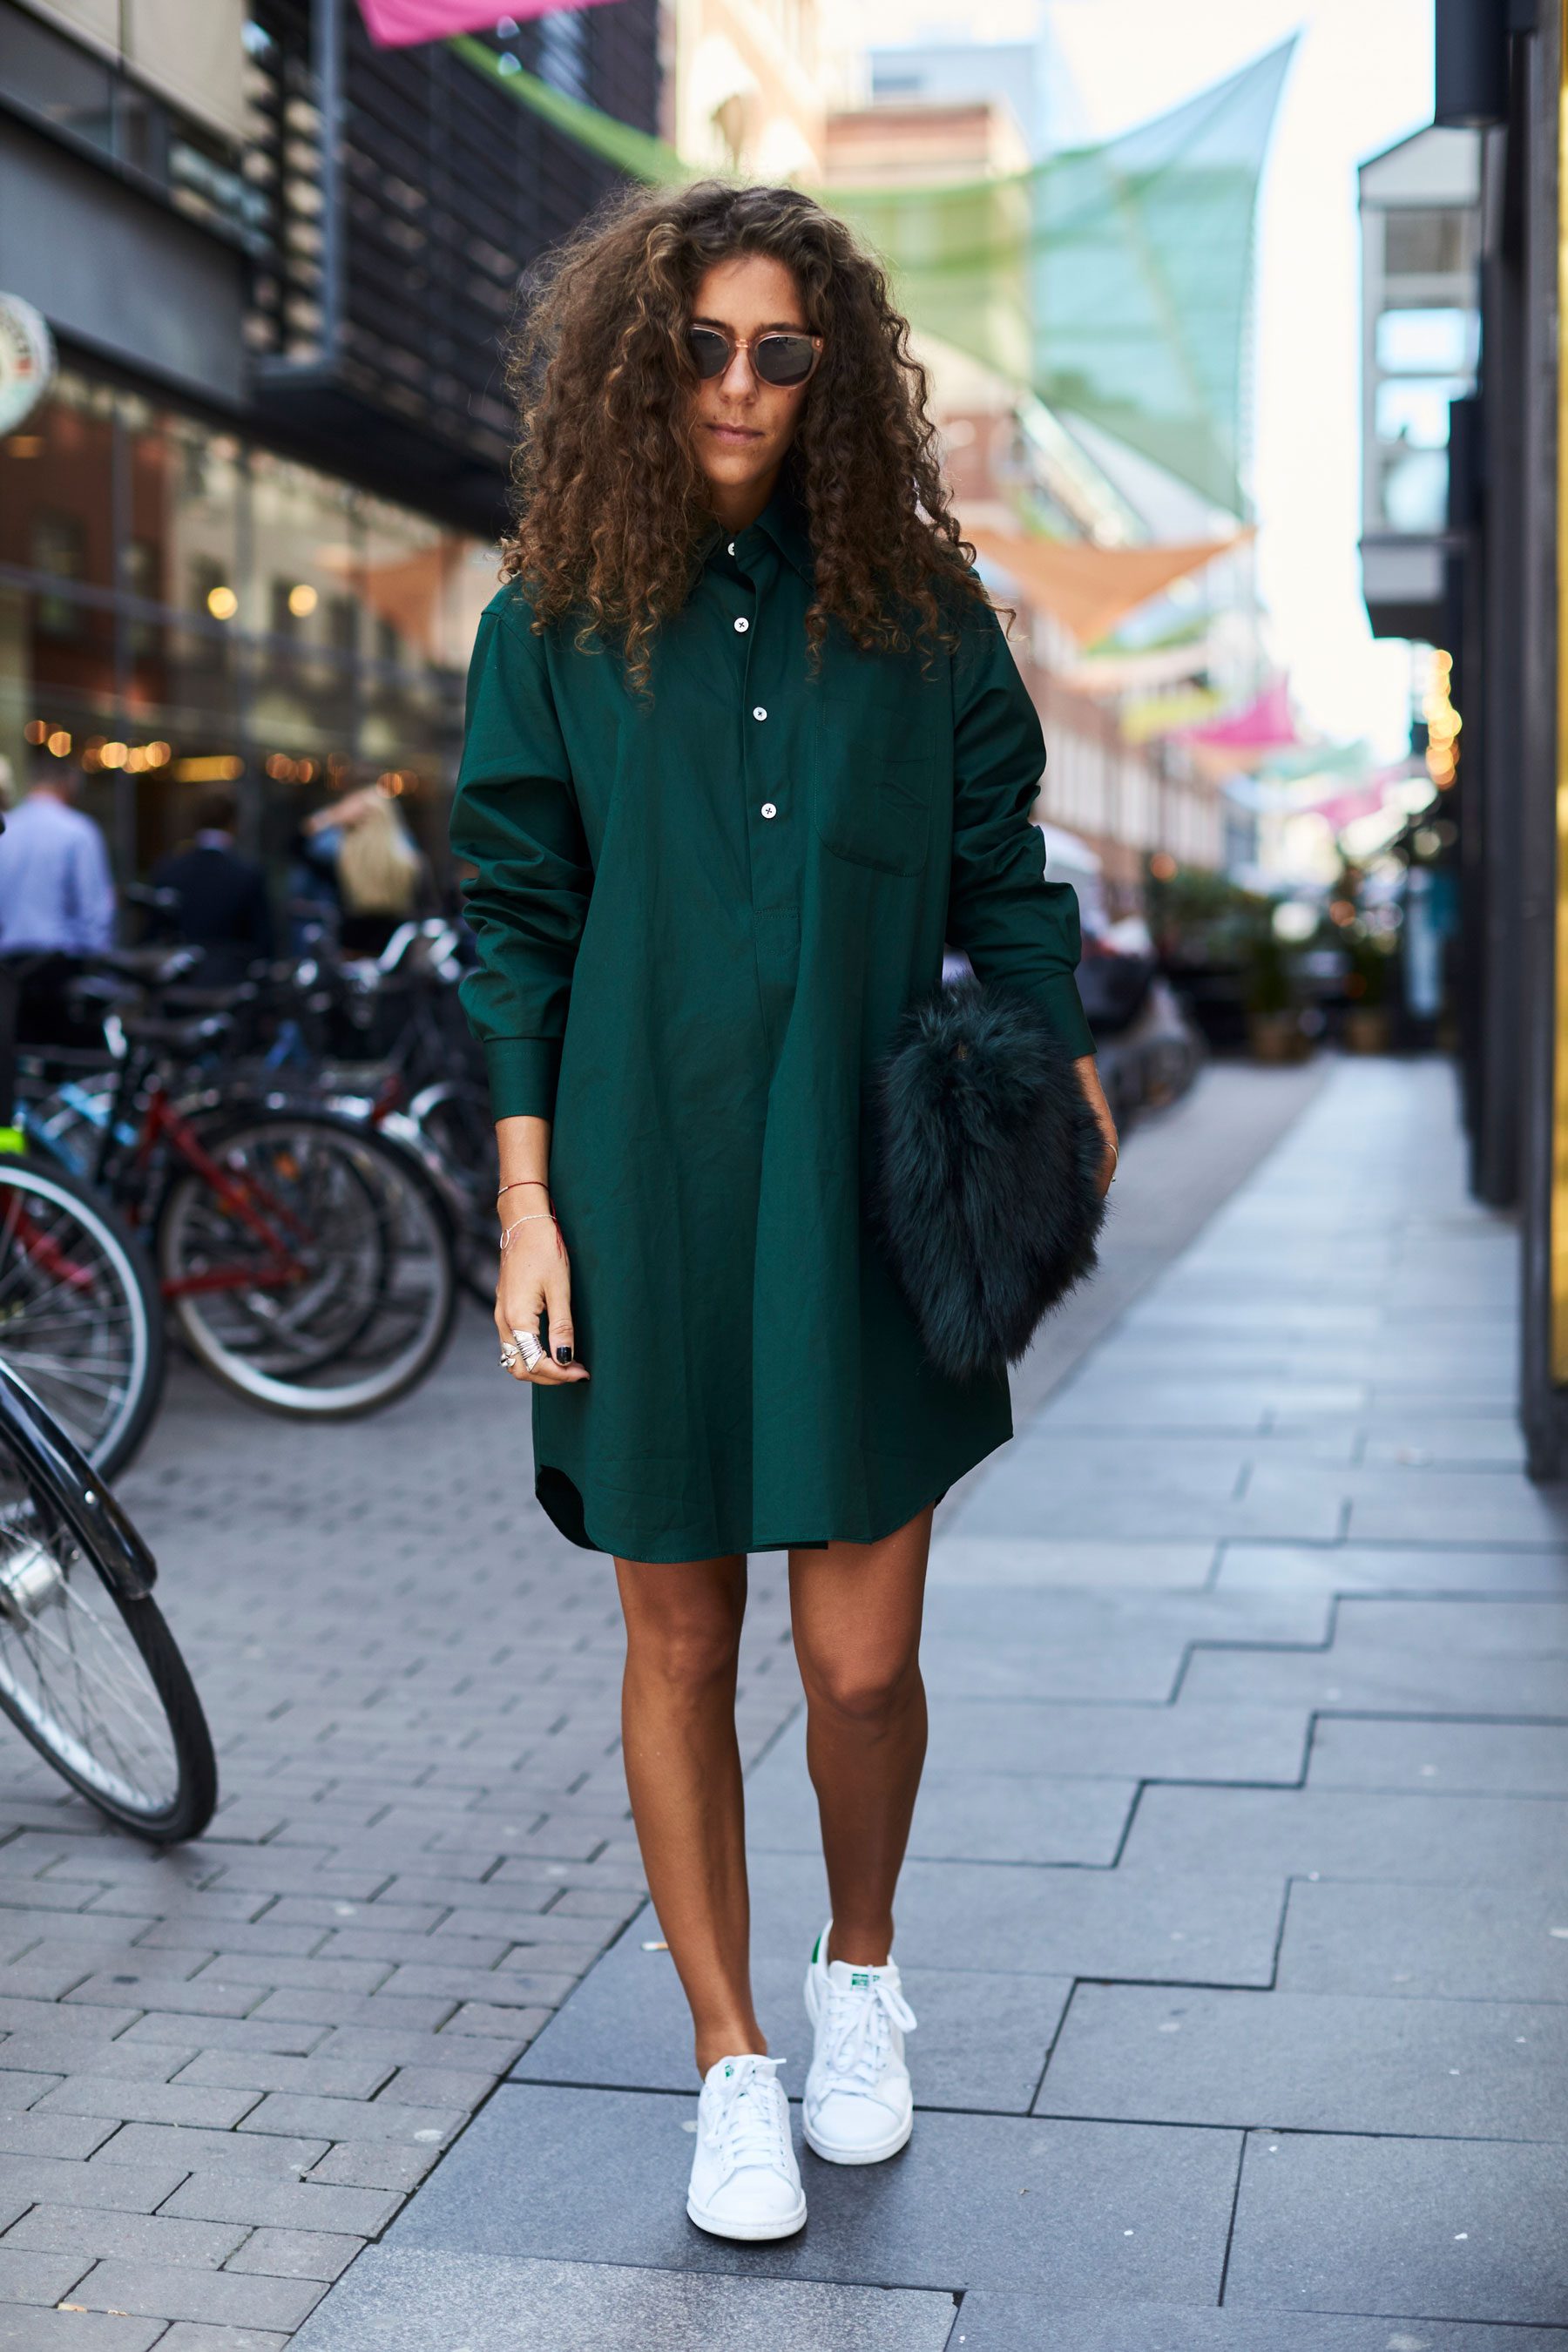 Oversized dress shirt fashion ASOS Online Shopping for the Latest Clothes Fashion